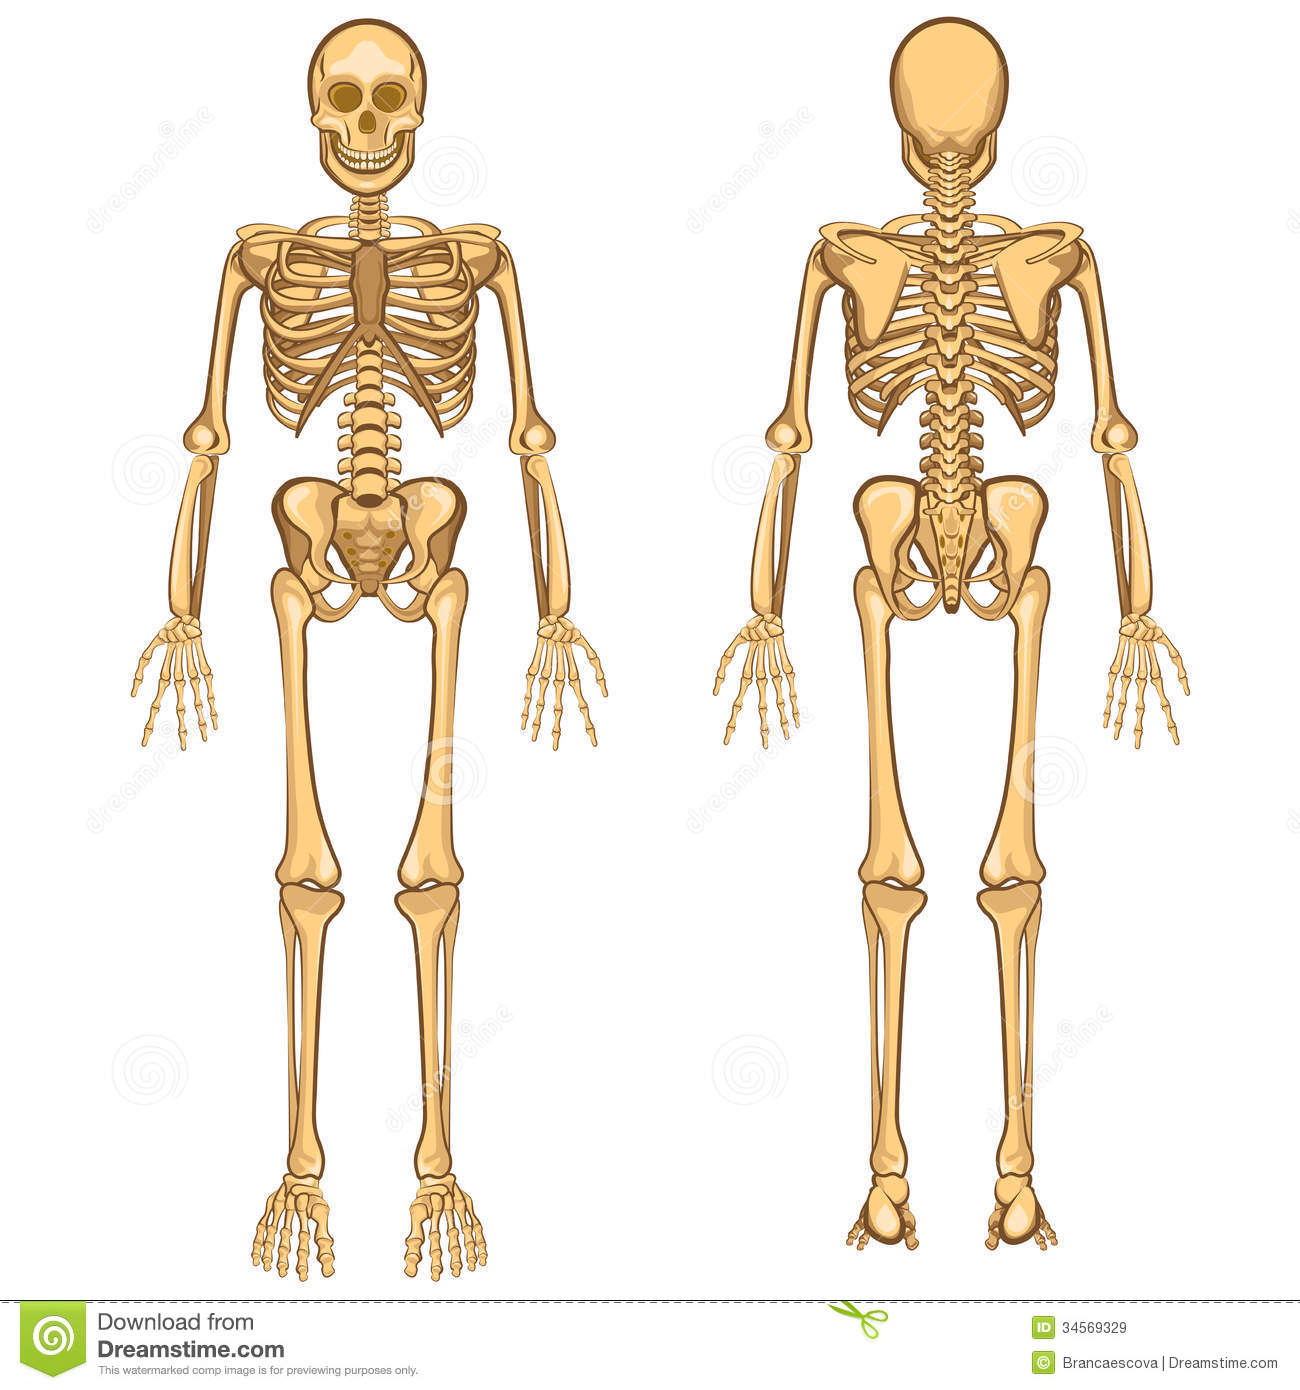 human skeleton vector illustration royalty free stock images, Skeleton